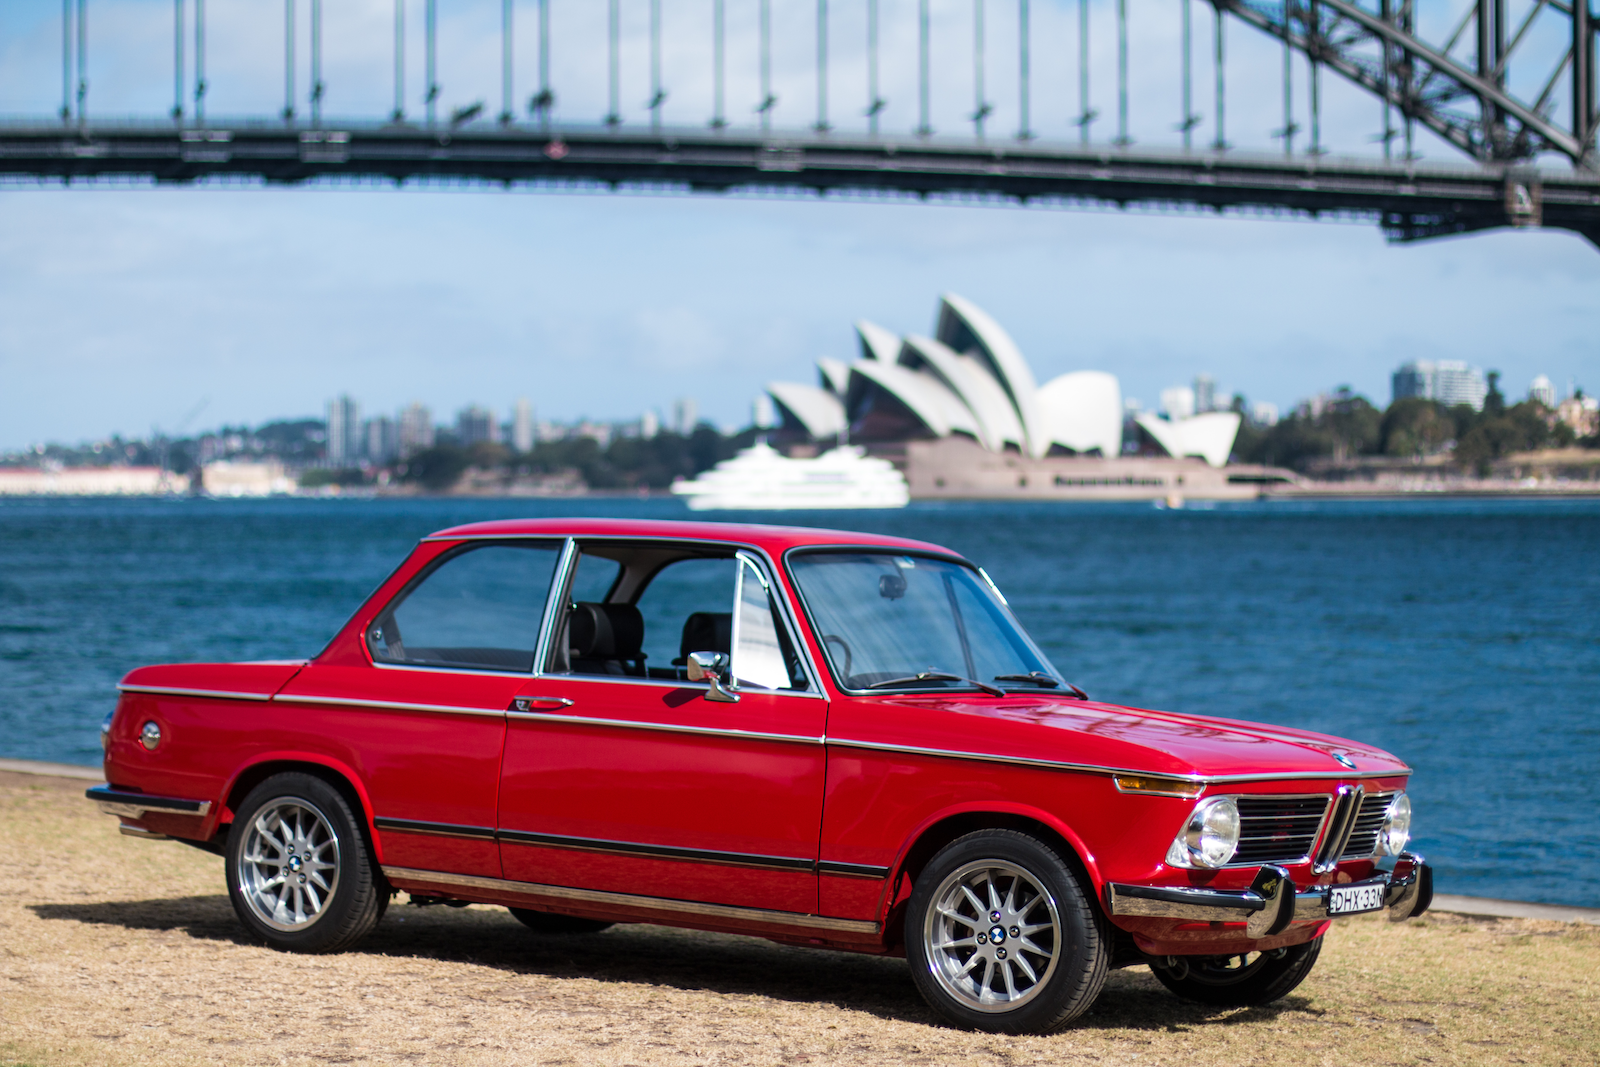 BMW-2002-Car-Full-Size-PNG.png